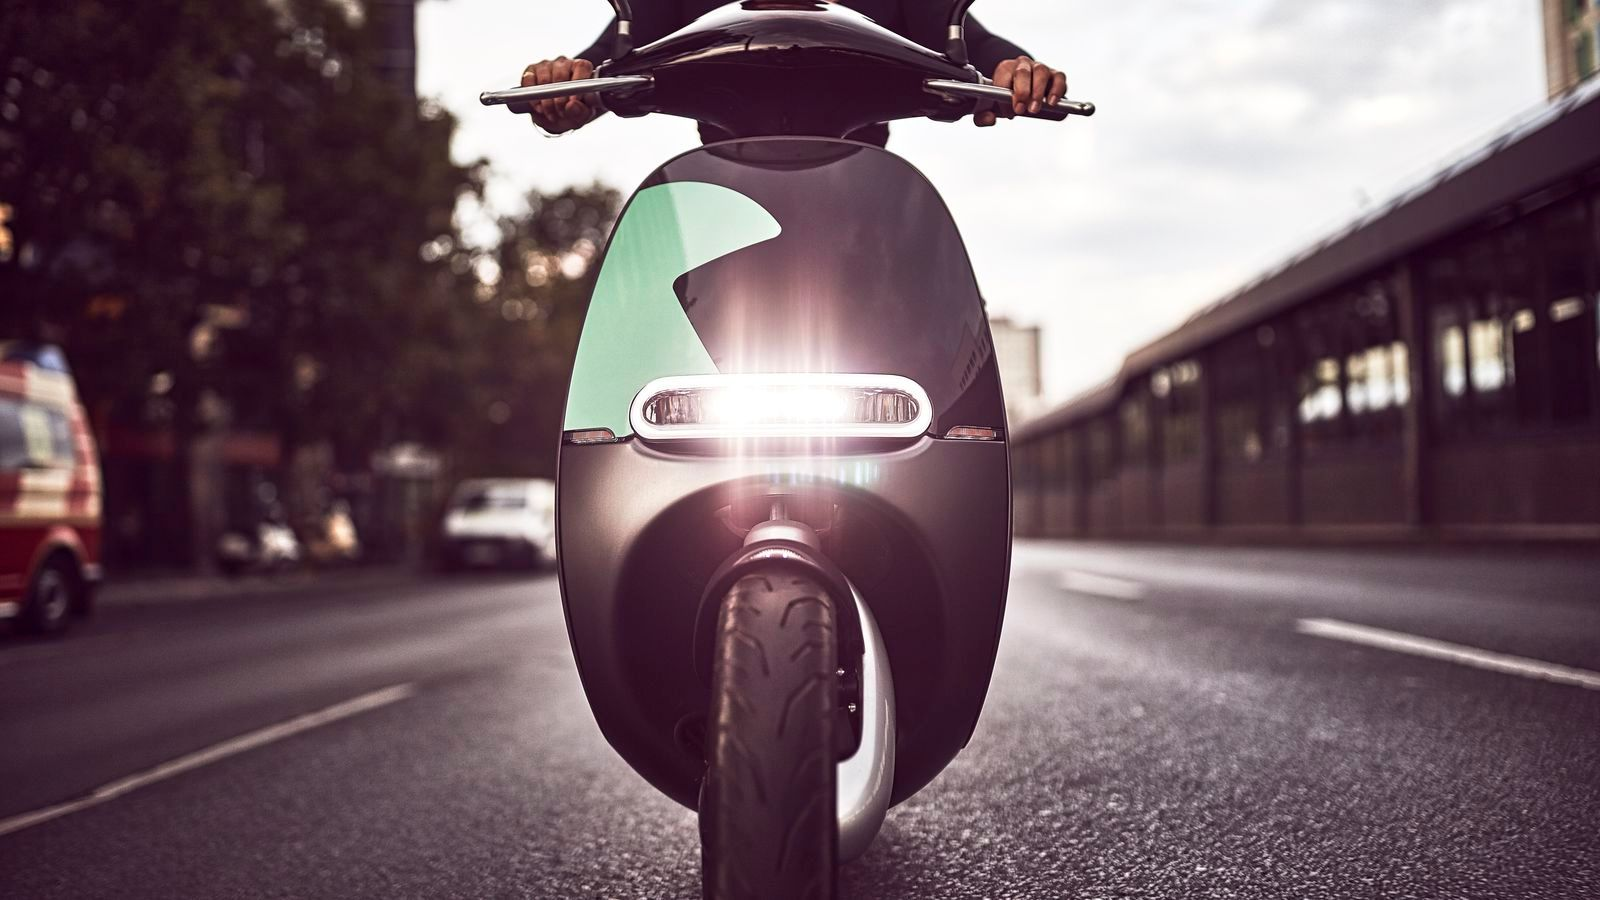 Gogoro e-scooter sharing is coming to Paris